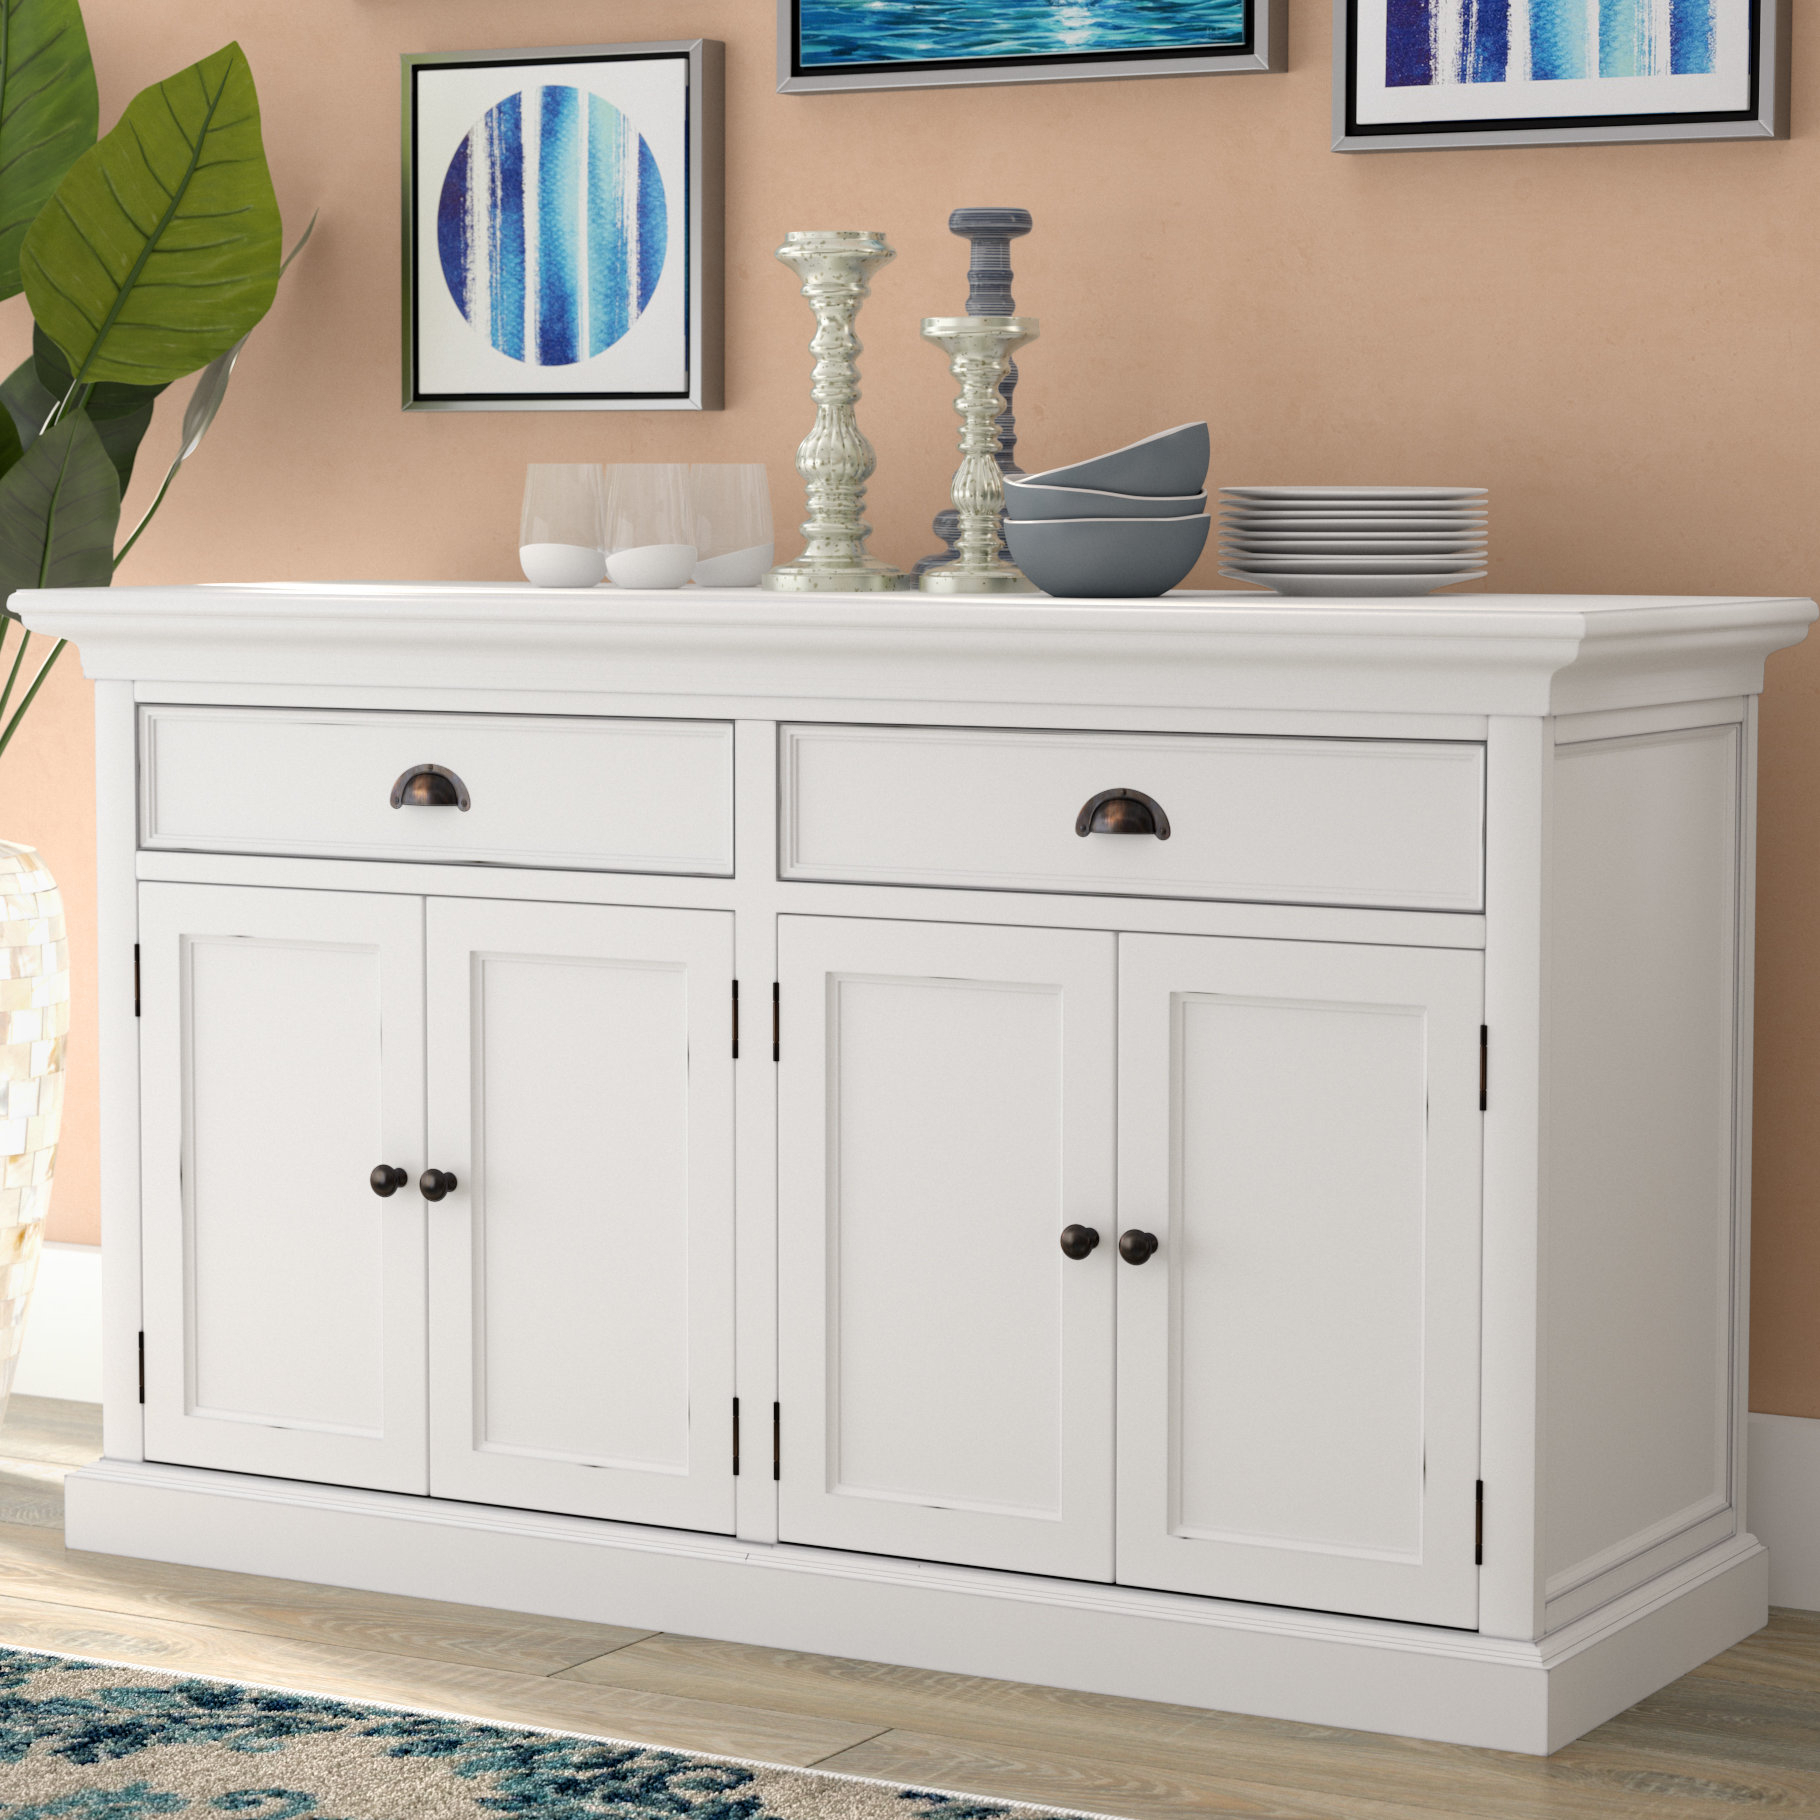 Beachcrest Home Amityville Wood Sideboard & Reviews | Wayfair Throughout Saguenay Sideboards (View 3 of 30)